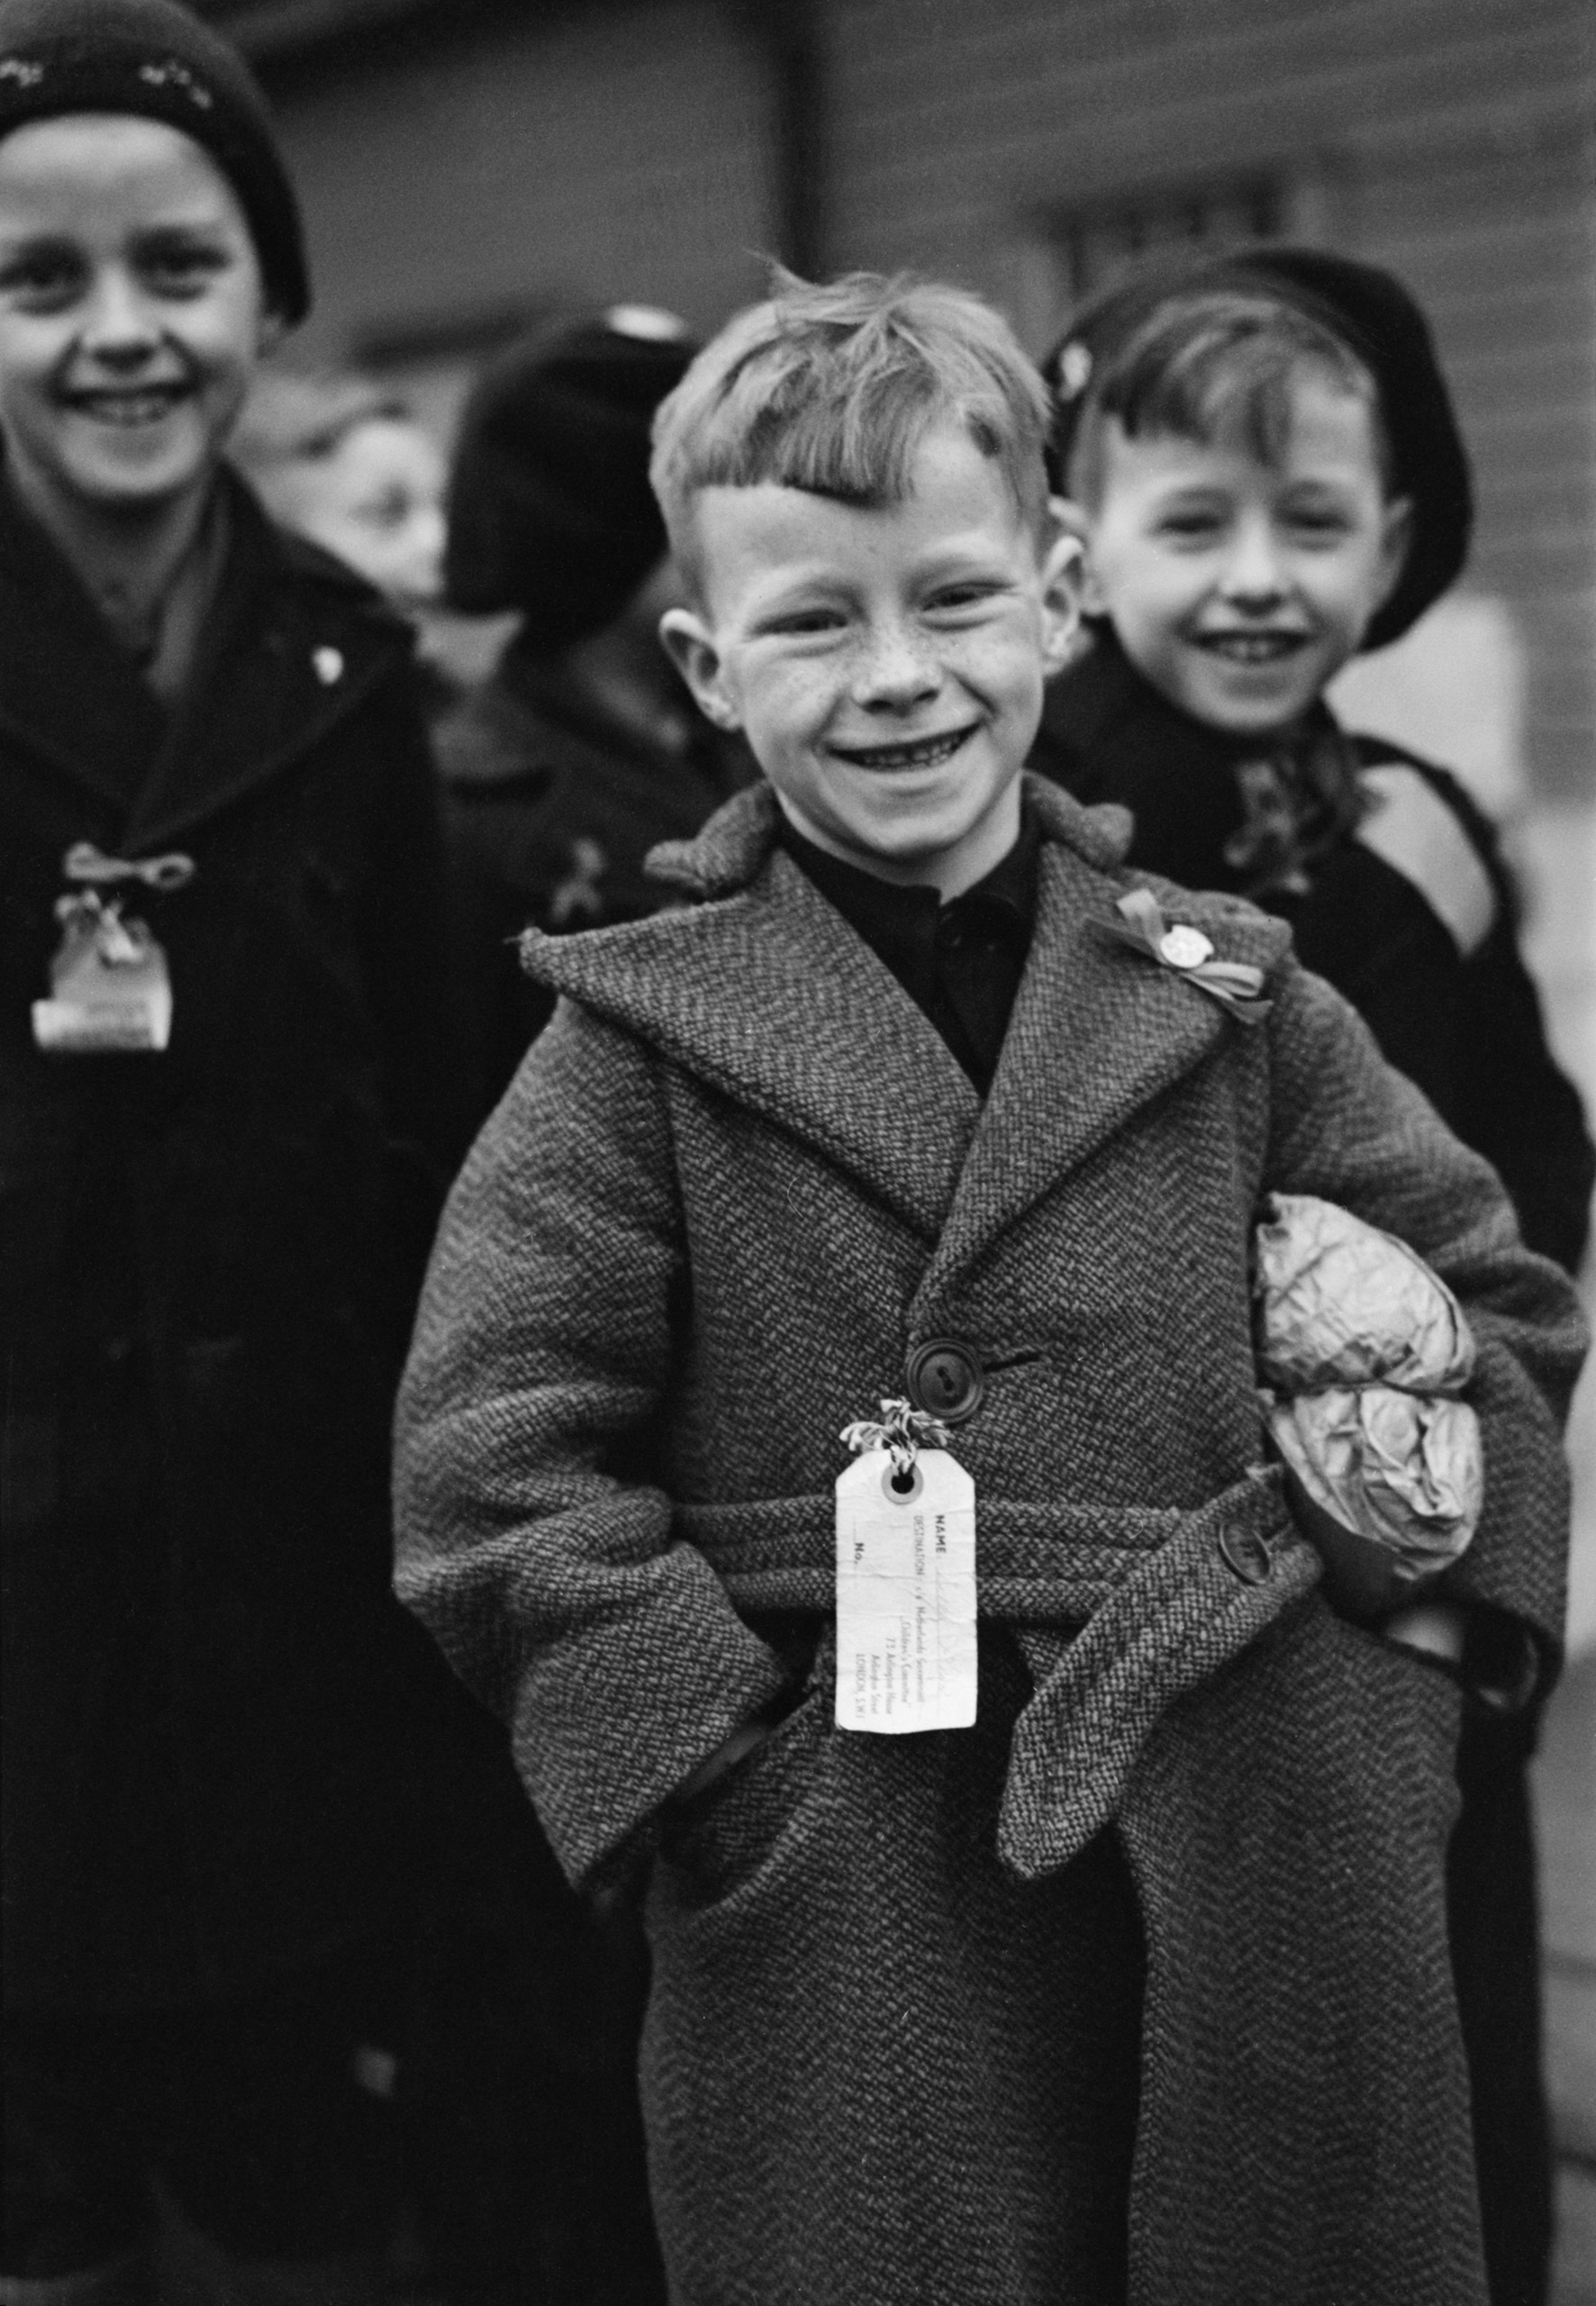 Dutch child refugees arrival In Britain at Tilbury, Essex, on Mar. 11, 1945. The small paper parcel under the boy's arm contains all his luggage.